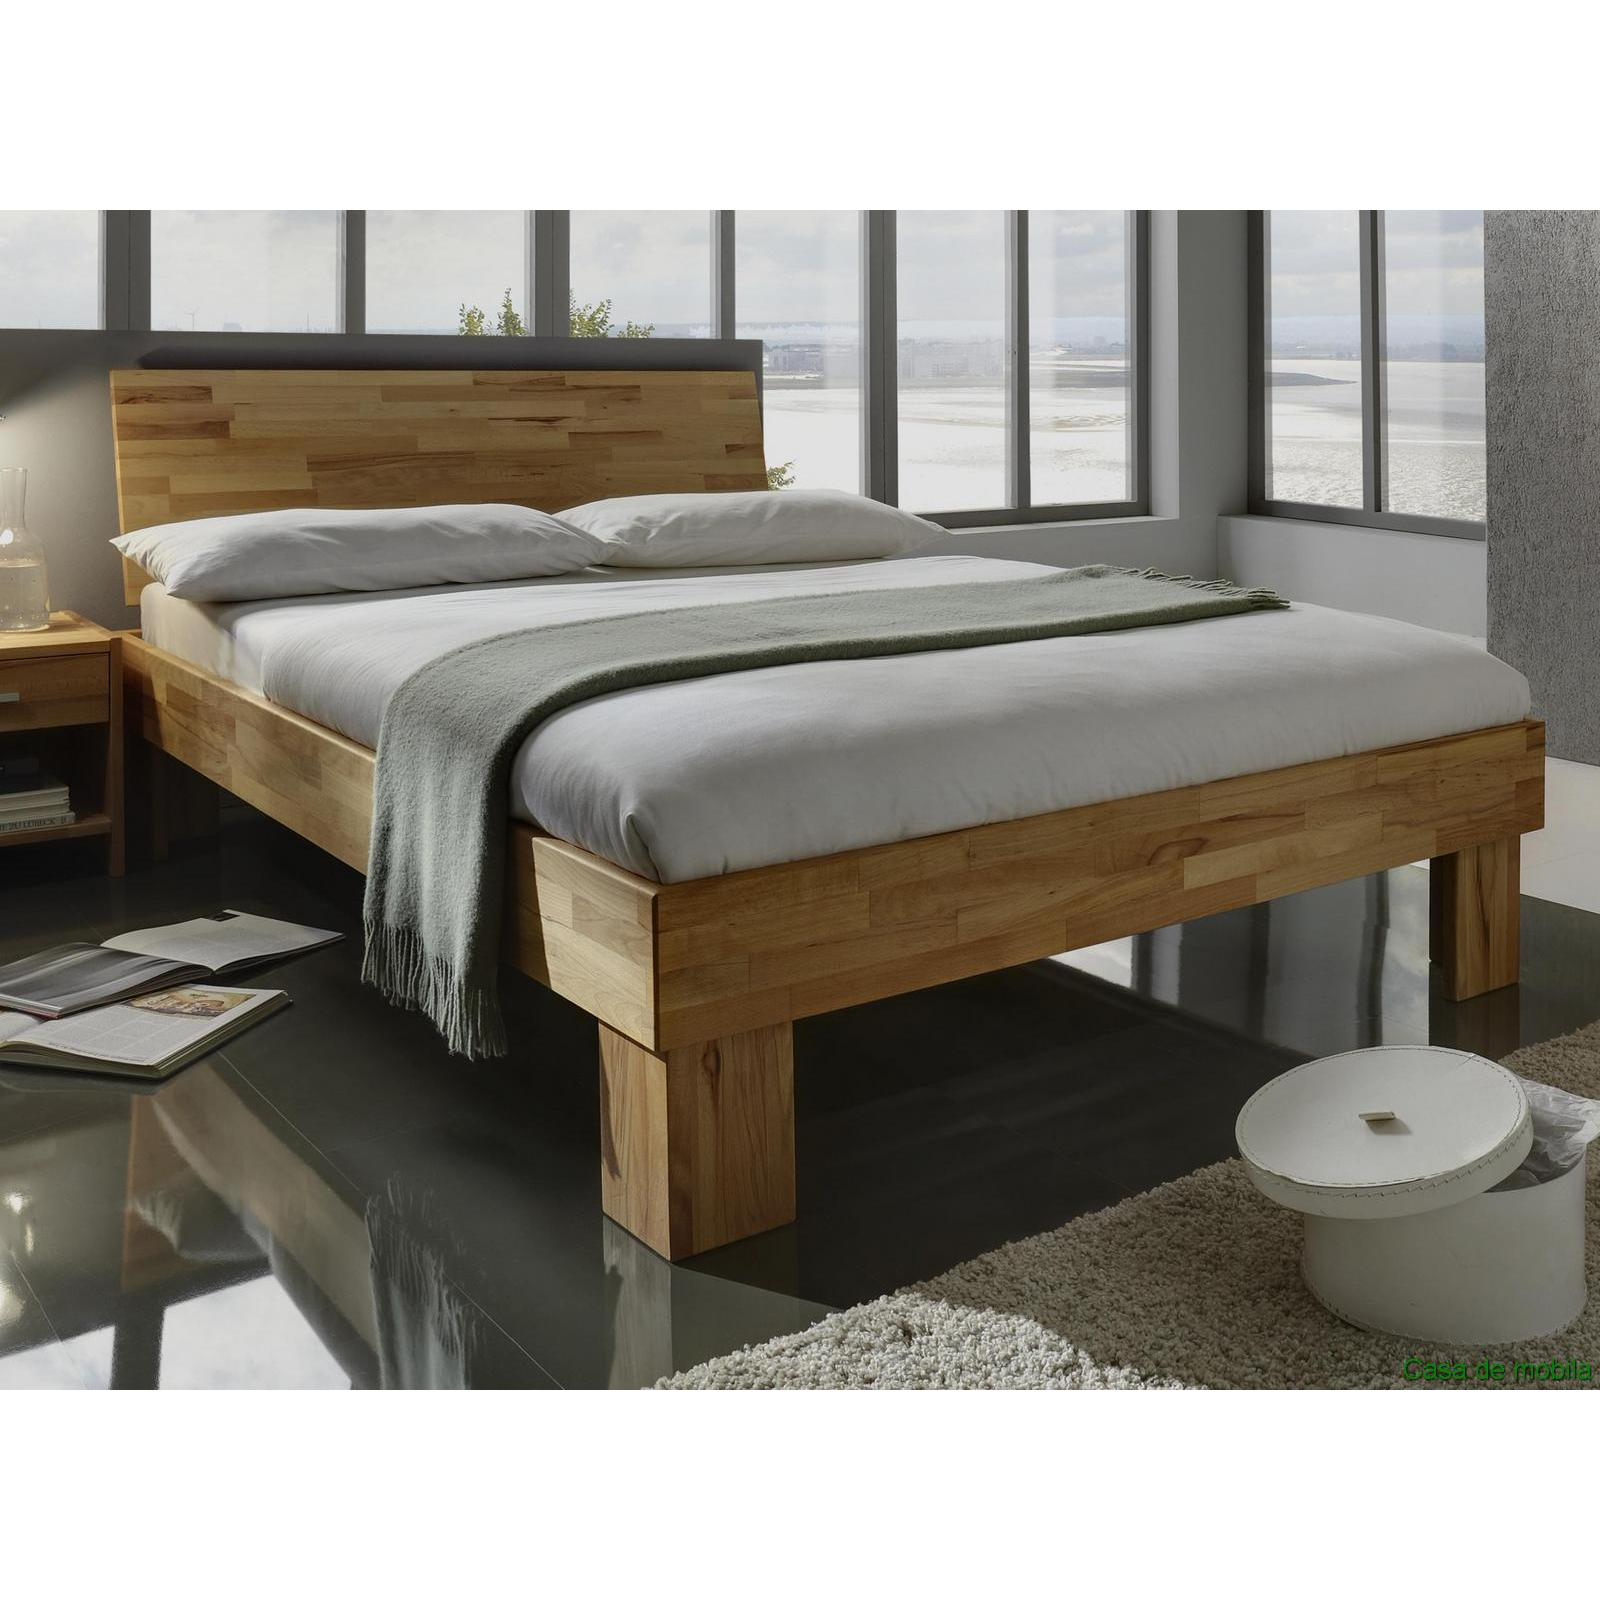 einzelbett futonbett jugendbett bett gestell 120x200 massiv holz kernbuche ge lt ebay. Black Bedroom Furniture Sets. Home Design Ideas